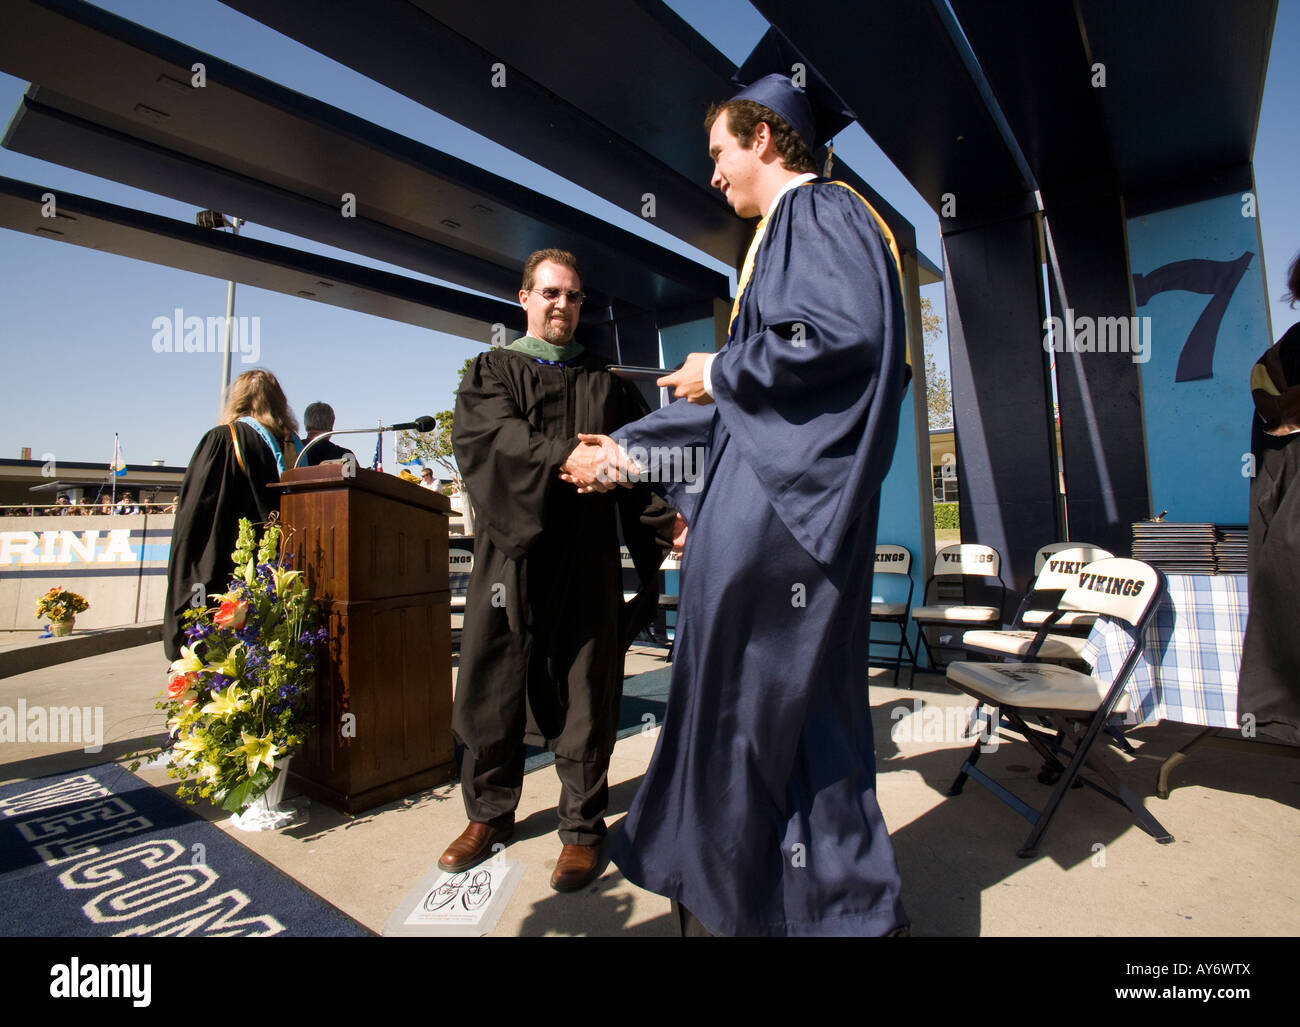 High school senior shakes hands with teacher during commencement - Stock Image